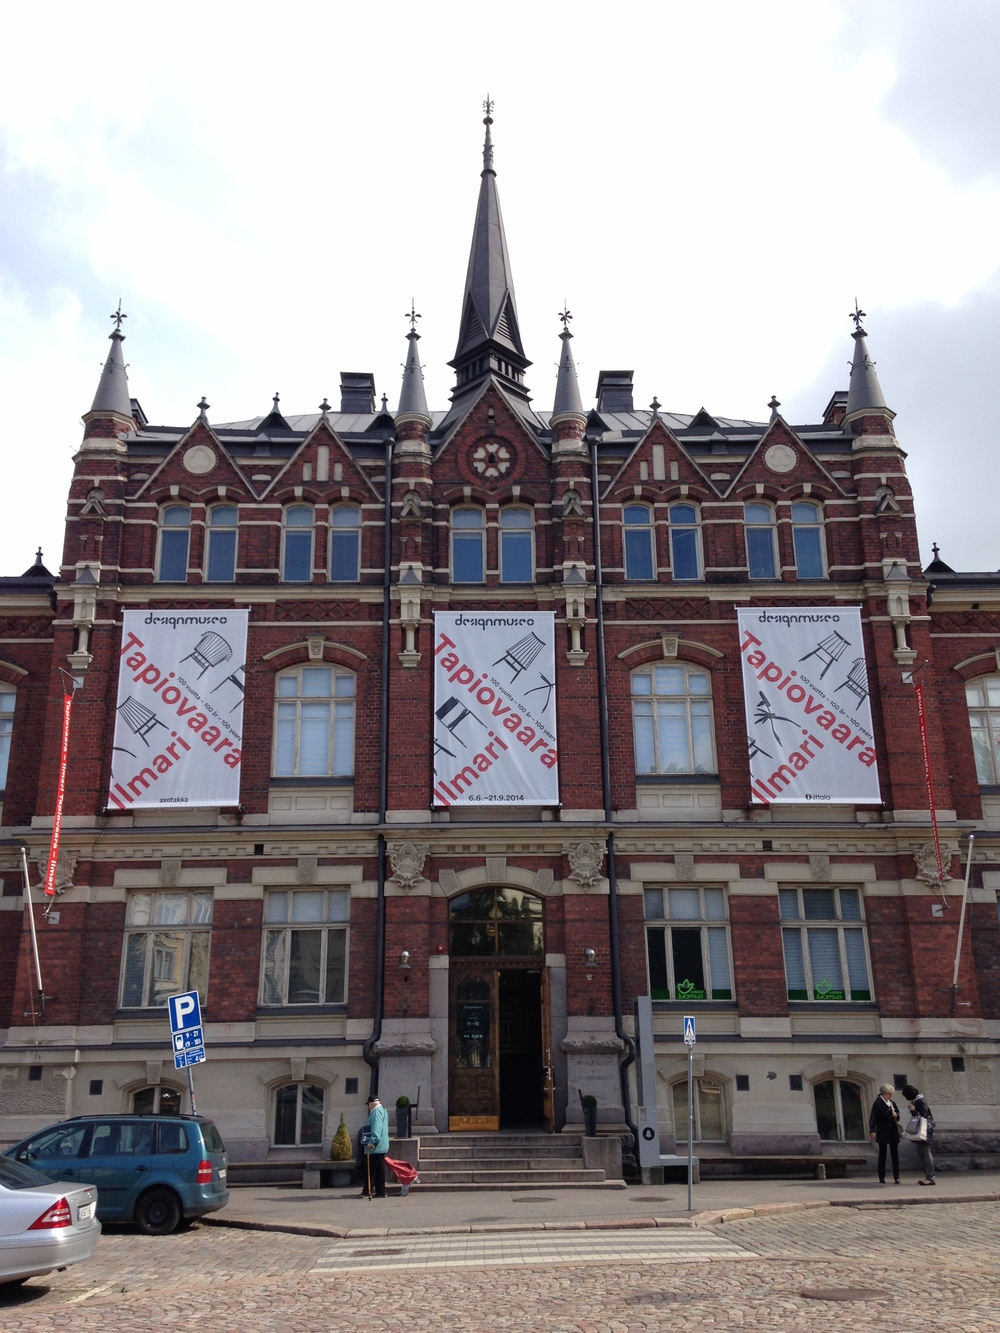 The Design Museum. A beautiful neo-gothic building from 1894.